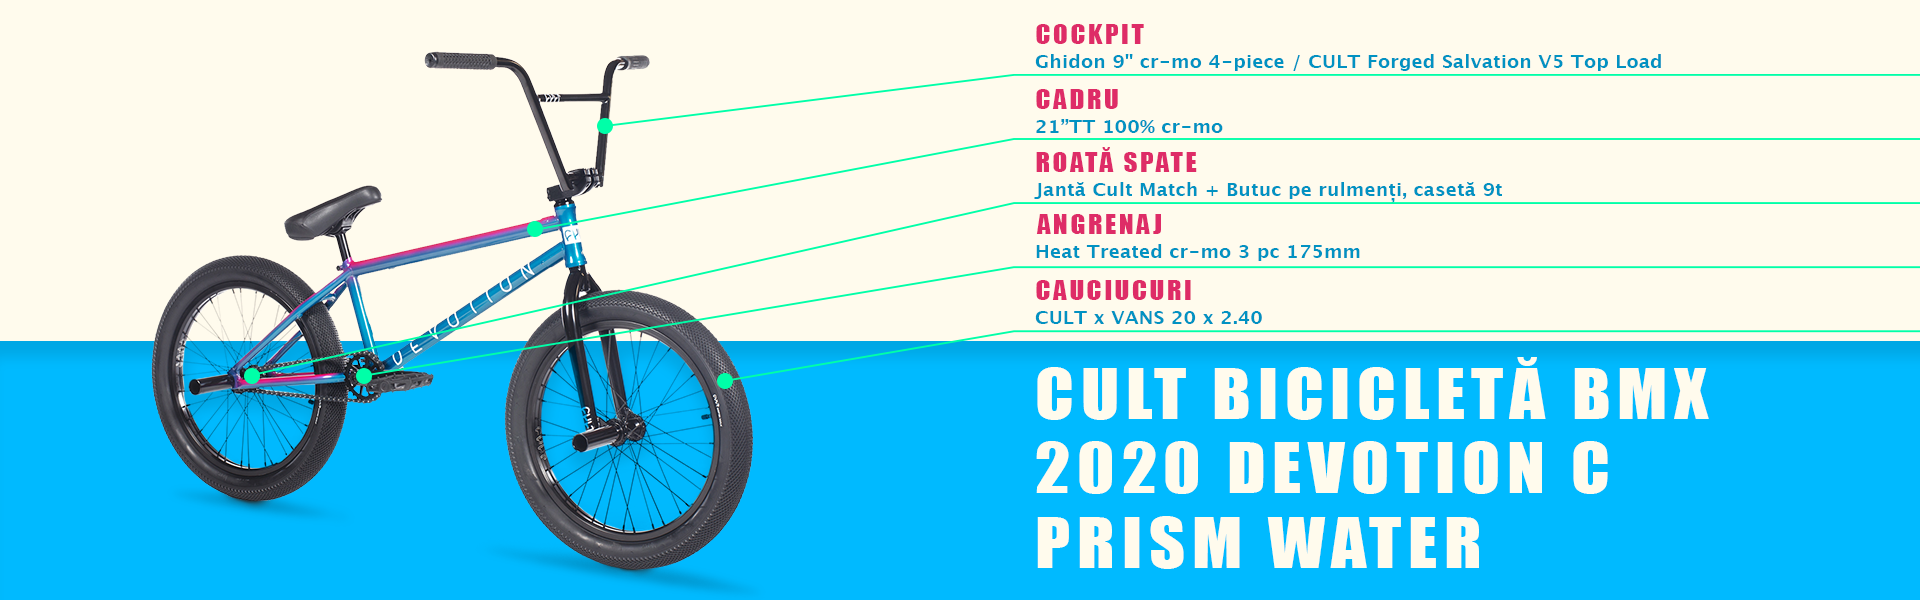 CULT Bicicleta BMX 2020 DEVOTION-C Prism Water